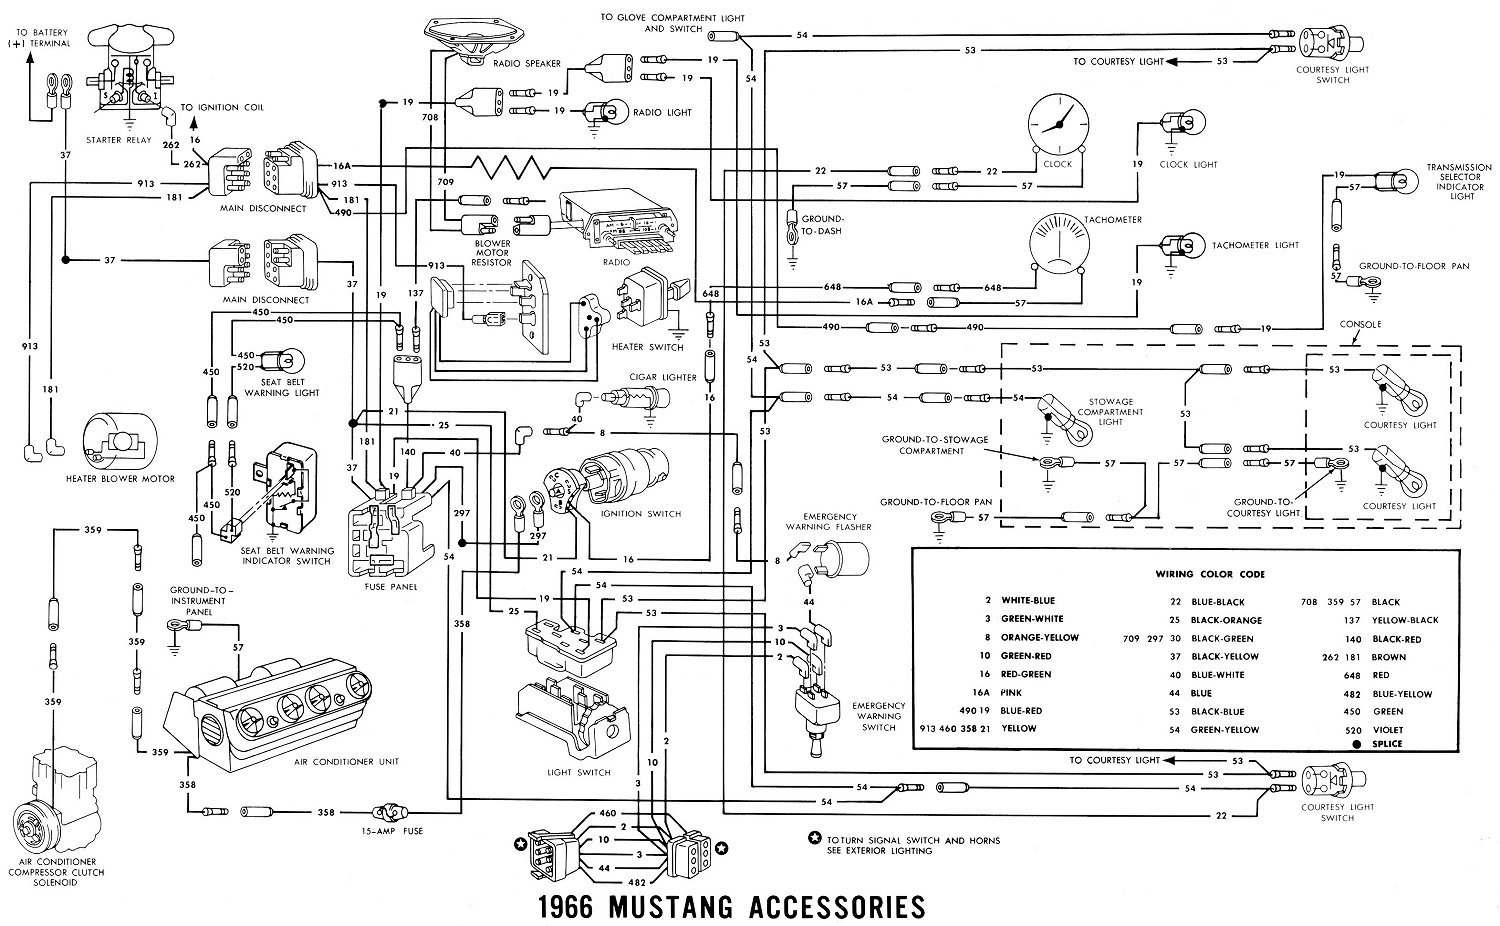 112253d1286219572 1966 mustang curtesy light problem 1966 ford mustang accessories wiring diagram the 2002 ford escape v6 wiring diagram for the charging system Wiring Diagram for 1999 Ford Mustang at readyjetset.co